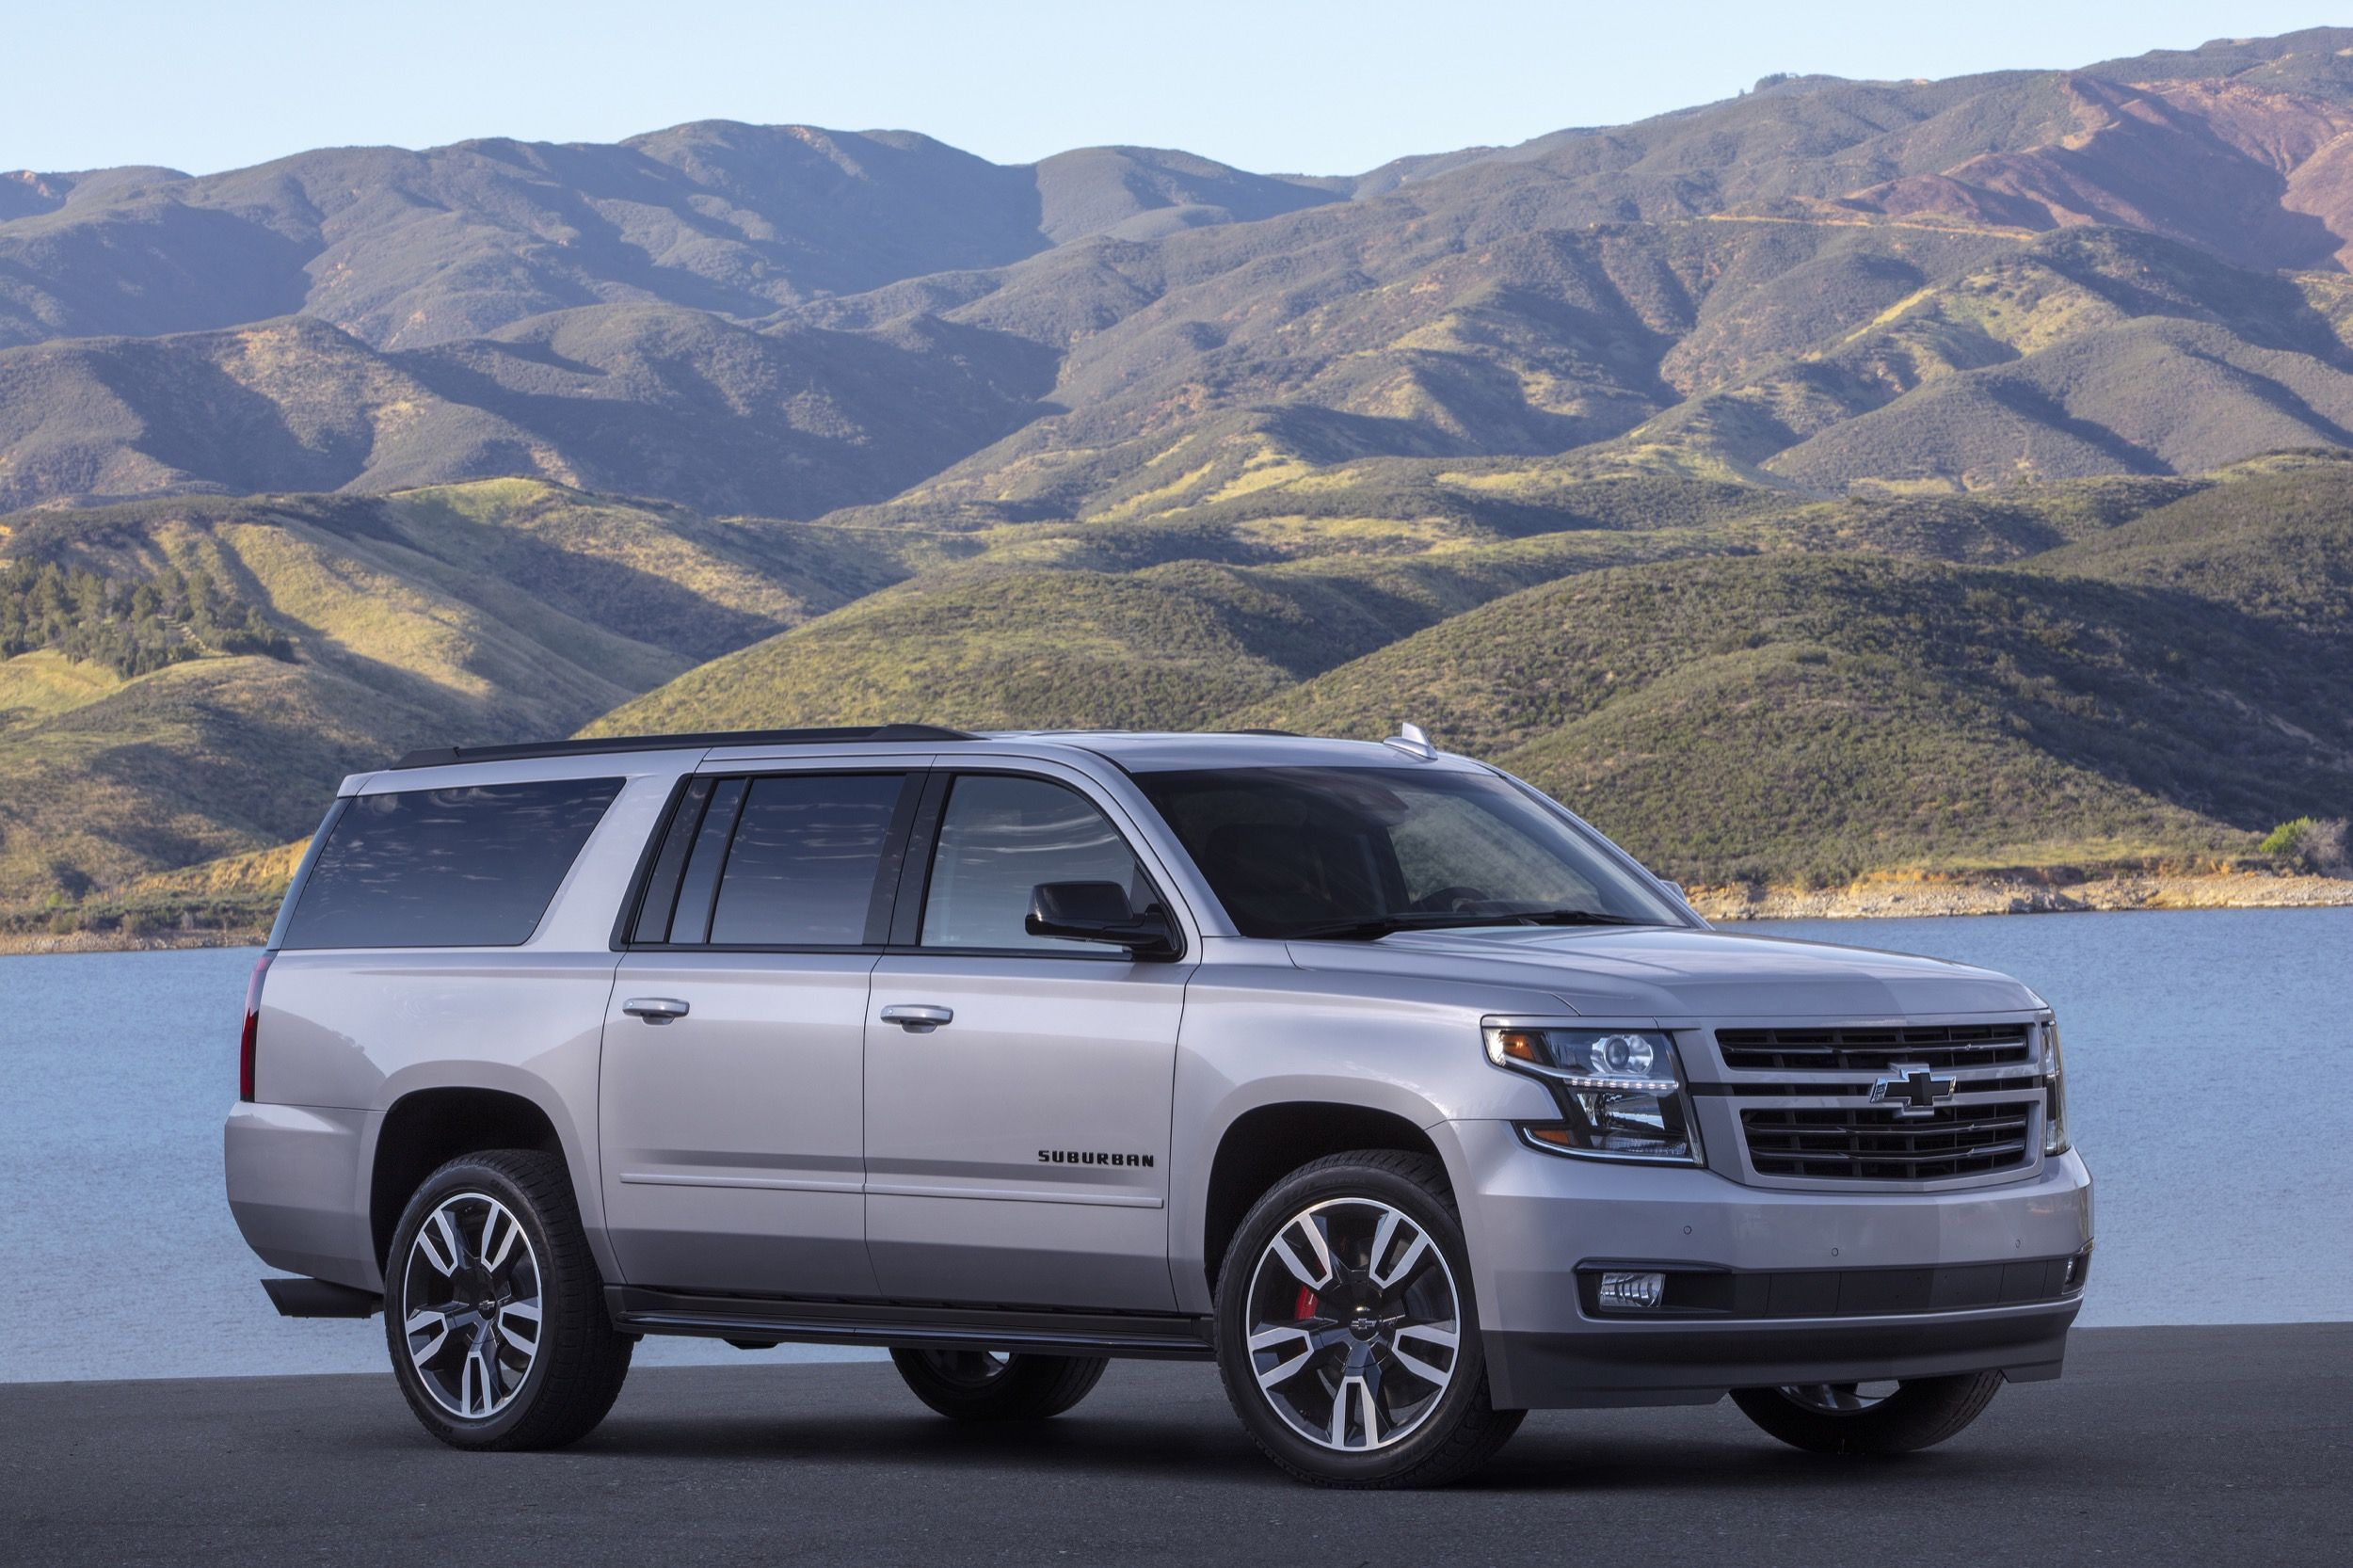 2020 Chevy Suburban Z71 Price And Review Chevrolet Suburban